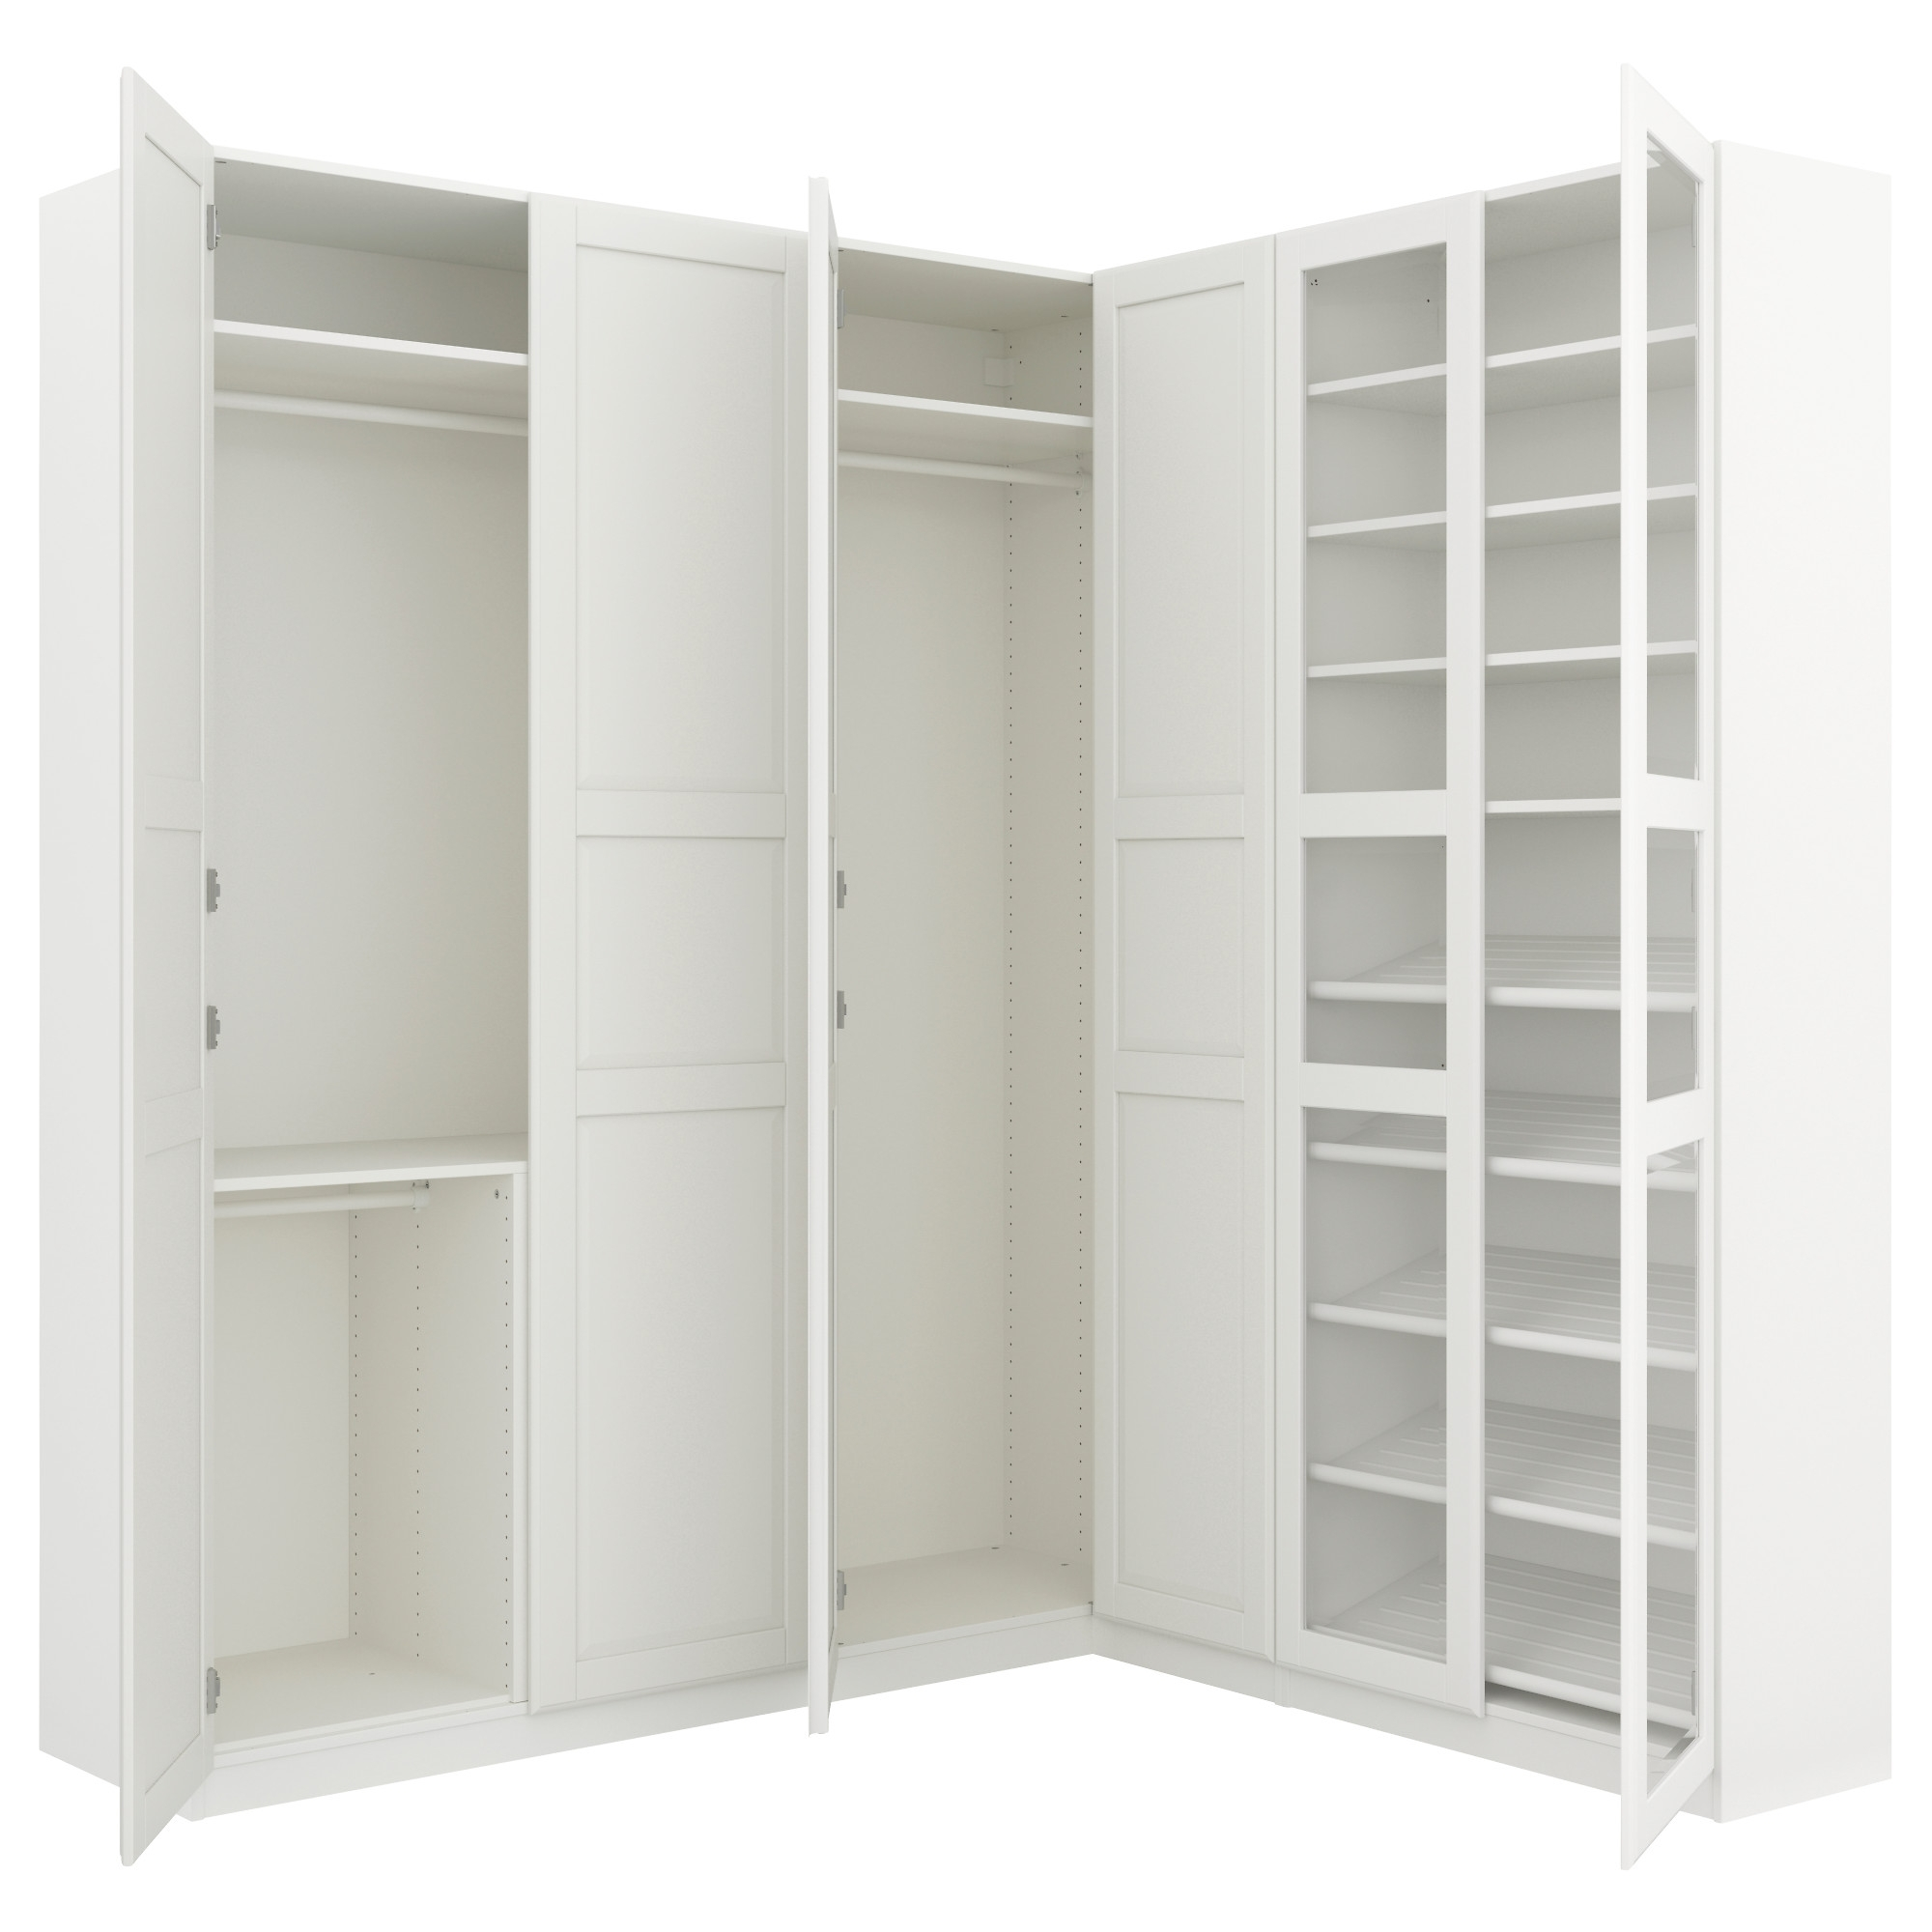 "Small Corner Wardrobes Regarding Widely Used Pax Corner Wardrobe – 82 3/4/73 7/8X93 1/8 "" – Ikea (View 8 of 15)"